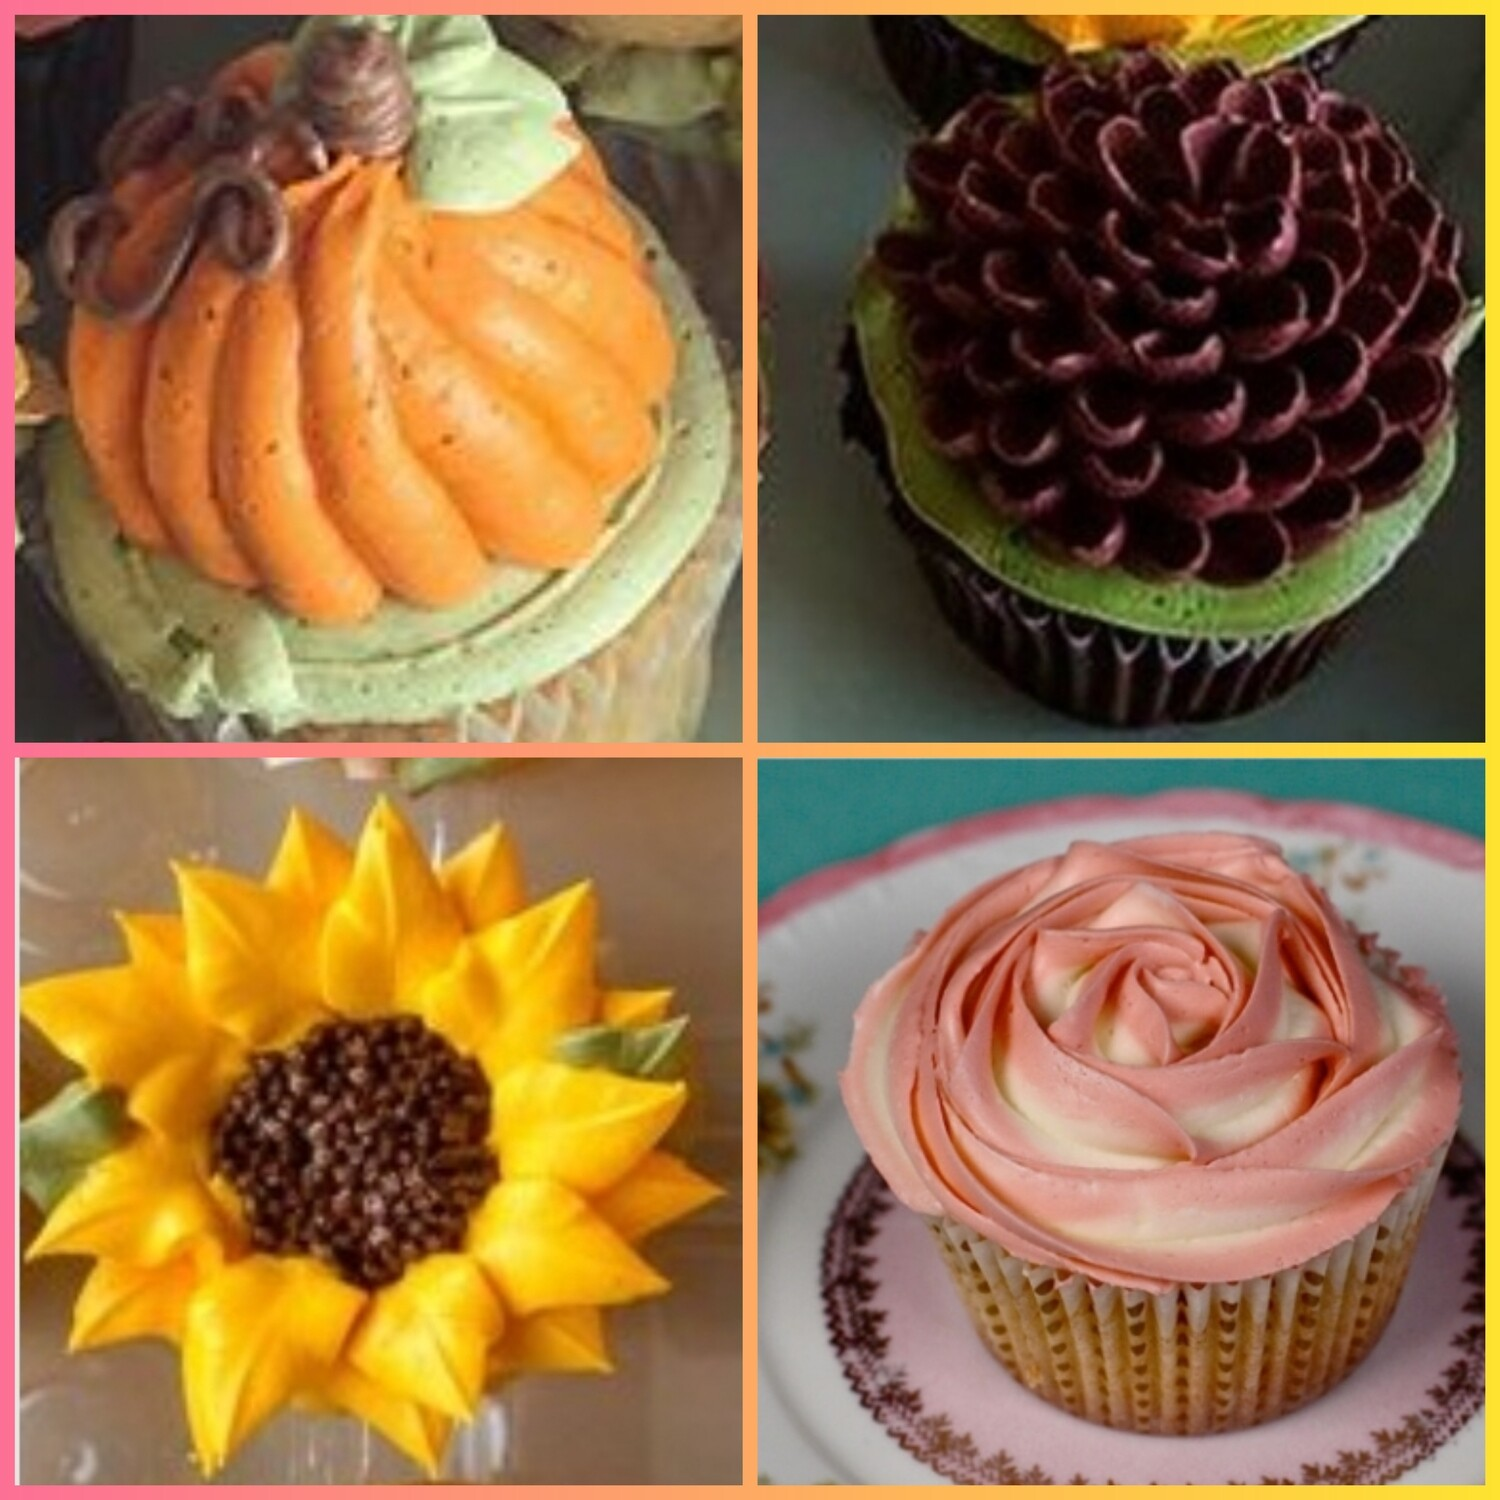 Adult BYOB Fall Flowers Cupcake Decorating Class Sunday September 26th 3pm to 5pm